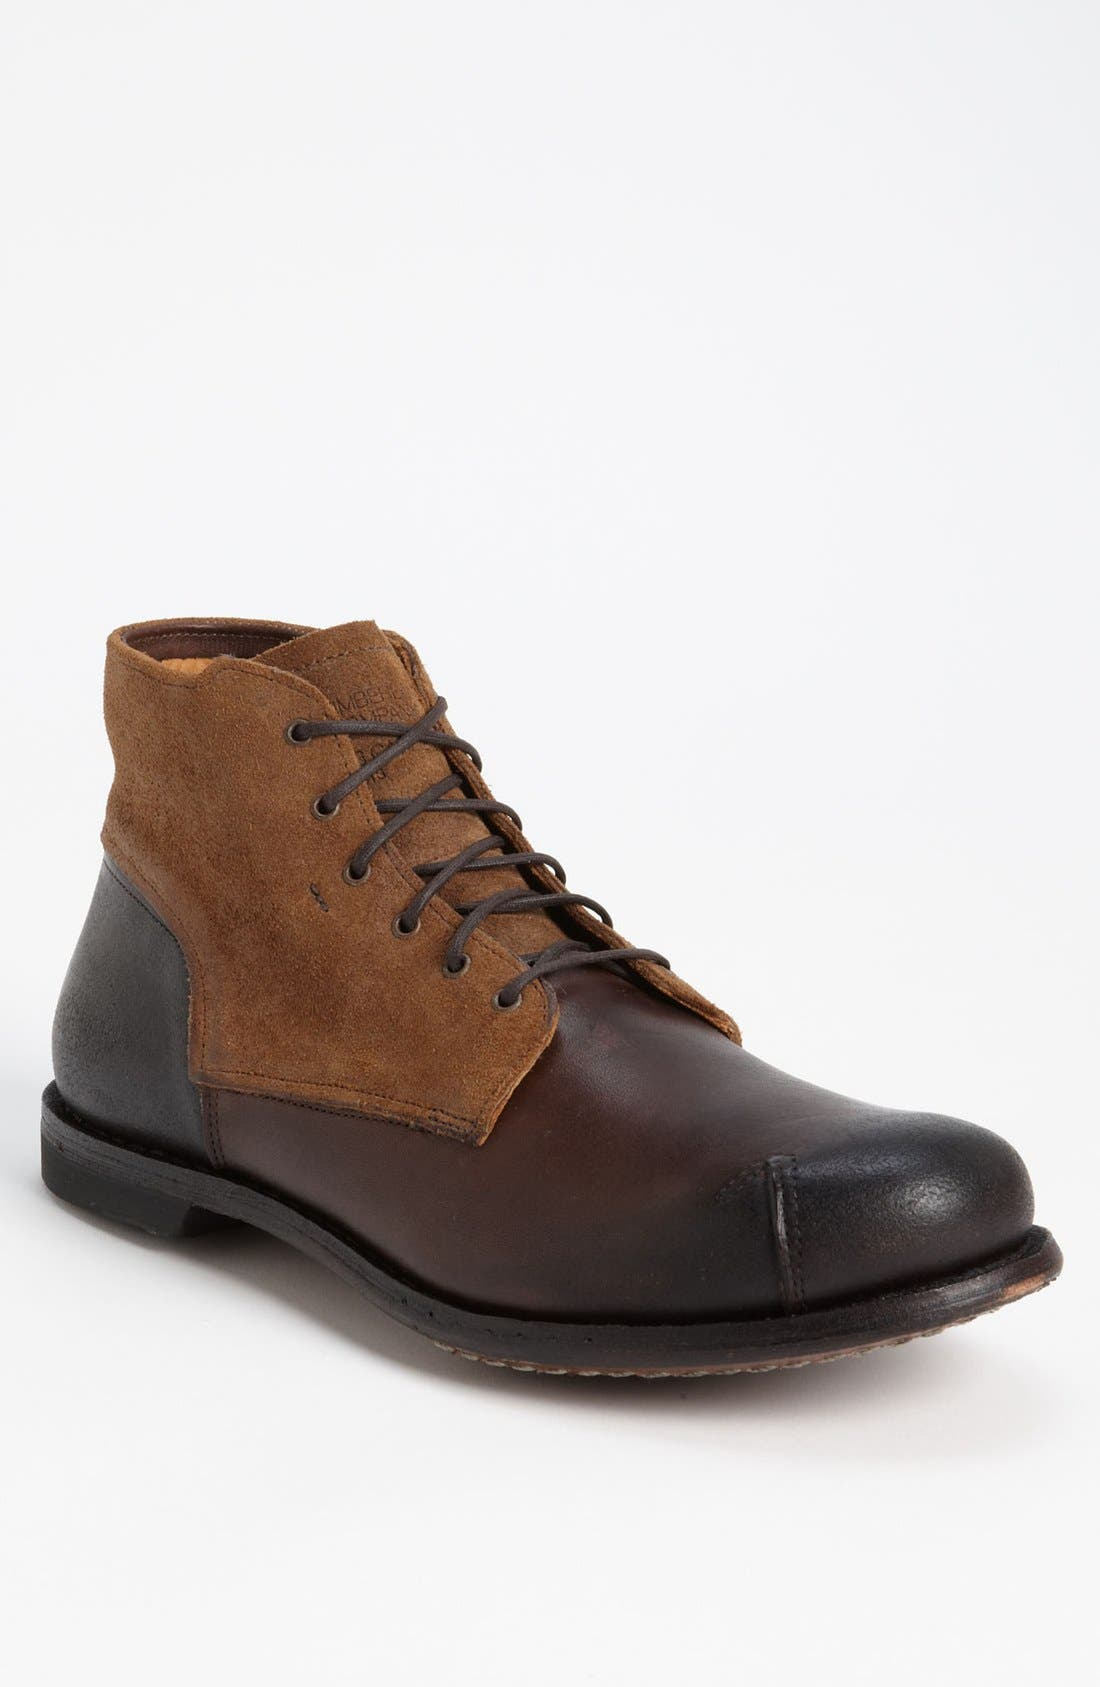 Alternate Image 1 Selected - TIMBERLAND 13 CARRIES CHUKKA BOOT